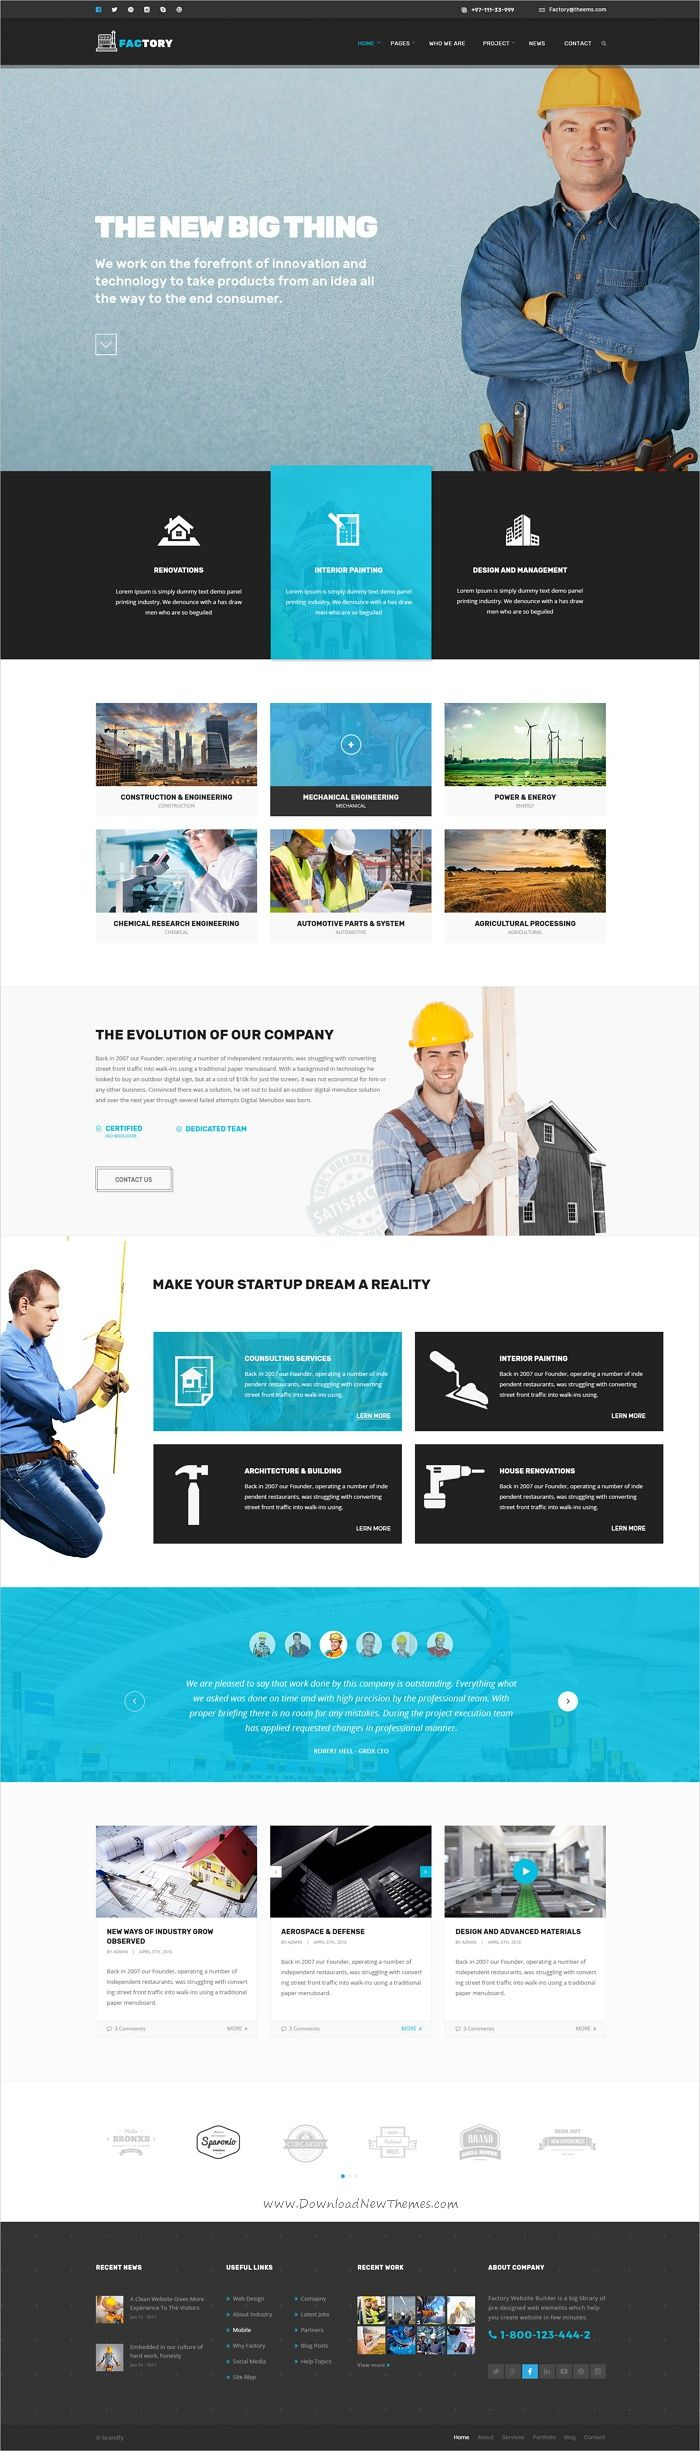 Factory is a modern design #Photoshop template for industrial, #mechanical, engineering, #construction company websites download now➩  https://themeforest.net/item/factory-industrial-business-psd-template/19035871?ref=Datasata